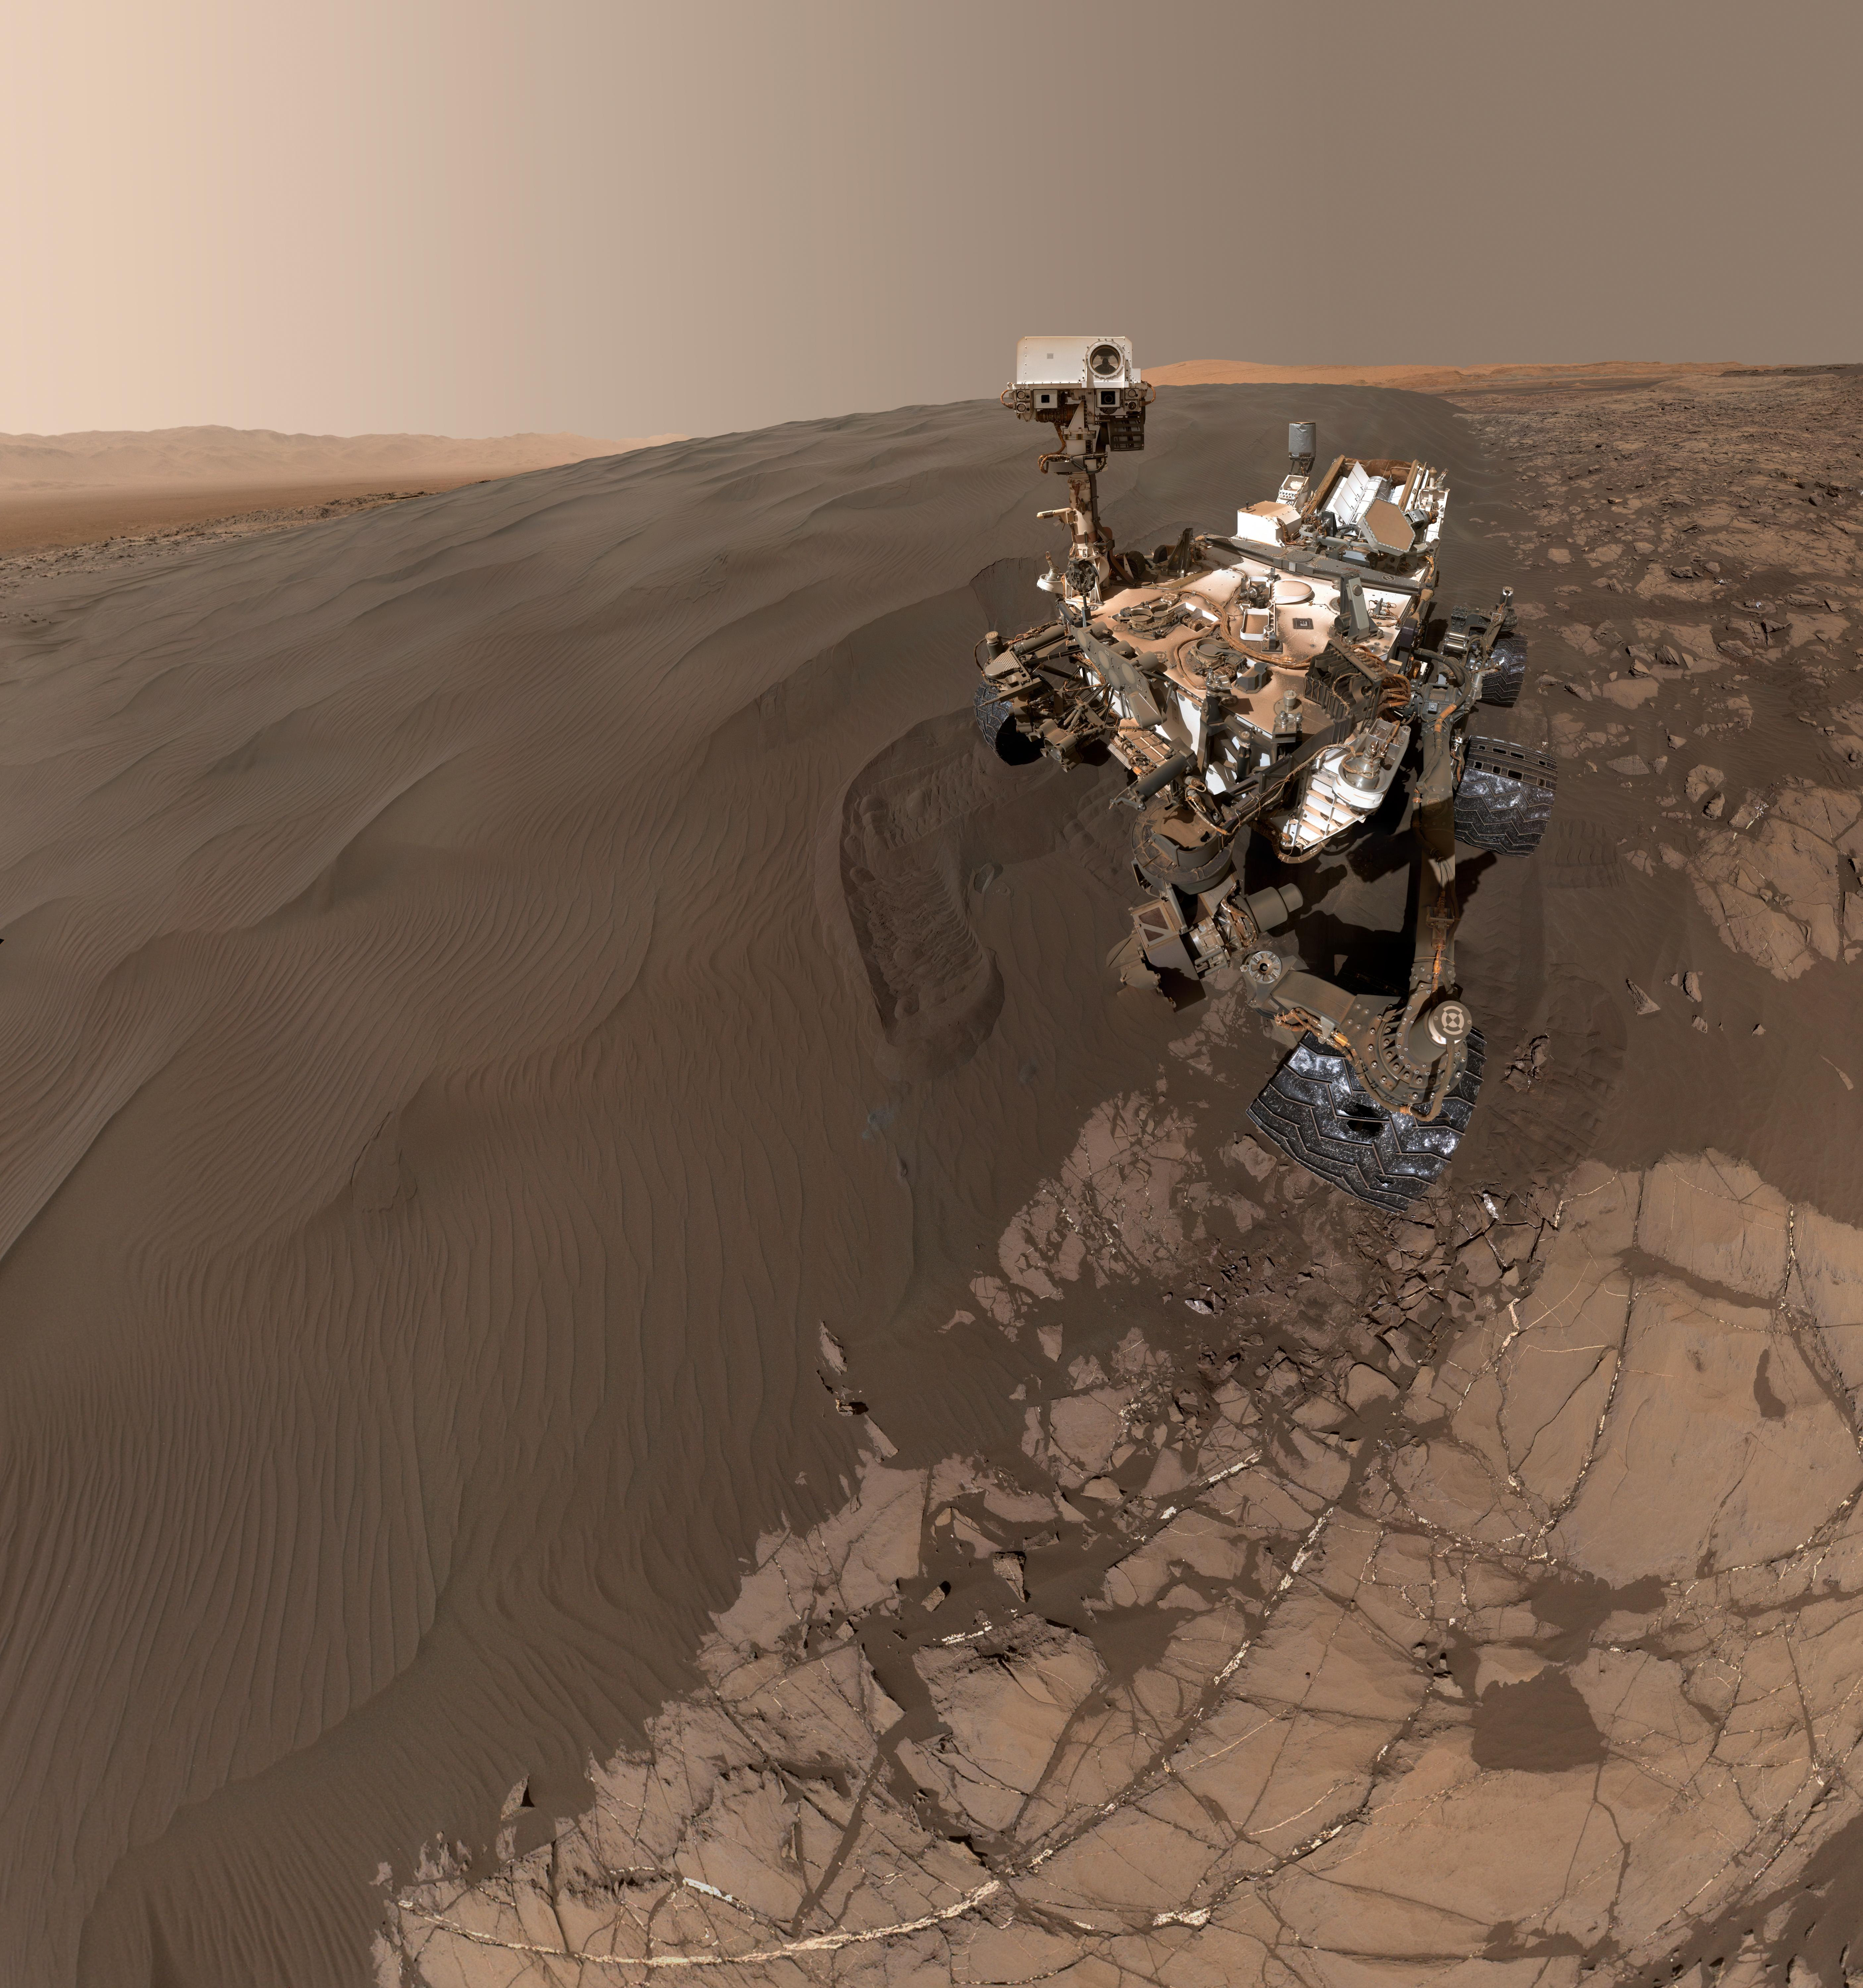 This self-portrait of NASA's Curiosity Mars rover shows the vehicle at  Namib Dune,  where the rover's activities included scuffing into the dune with a wheel and scooping samples of sand for laboratory analysis.